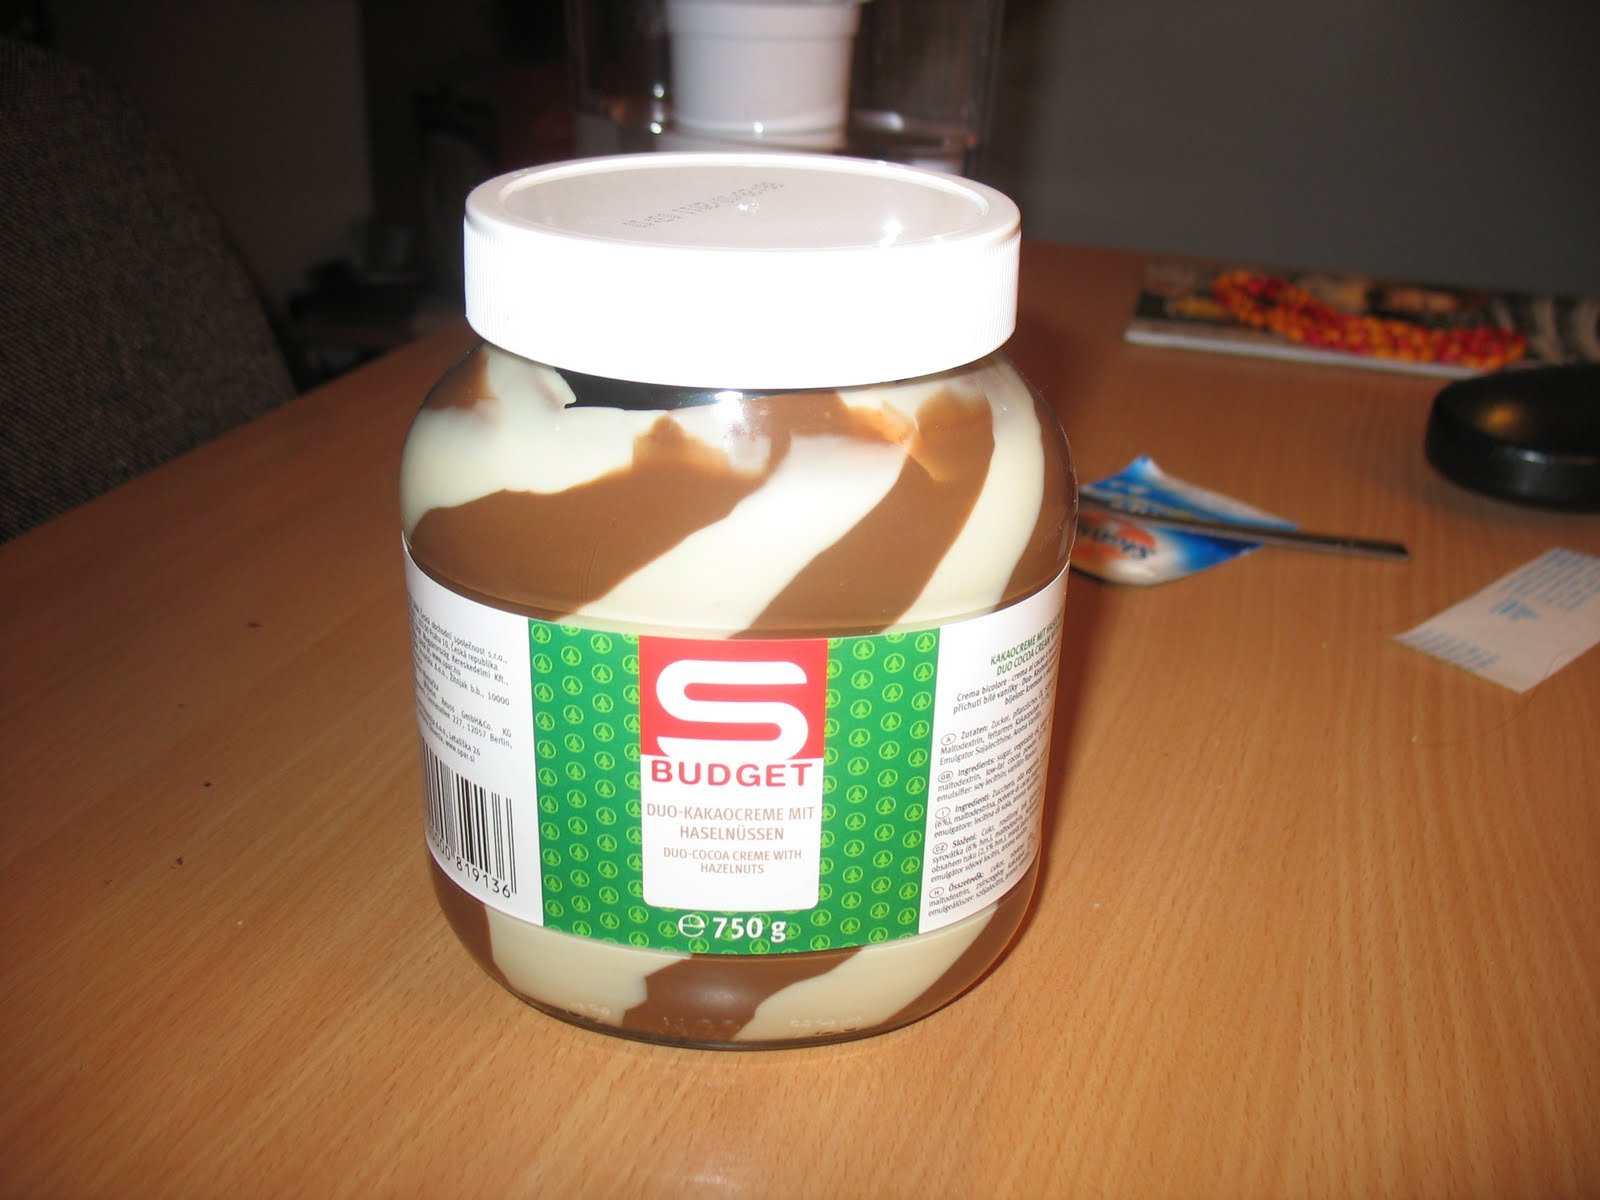 Nutella Bettwäsche Erasmus In September 2010